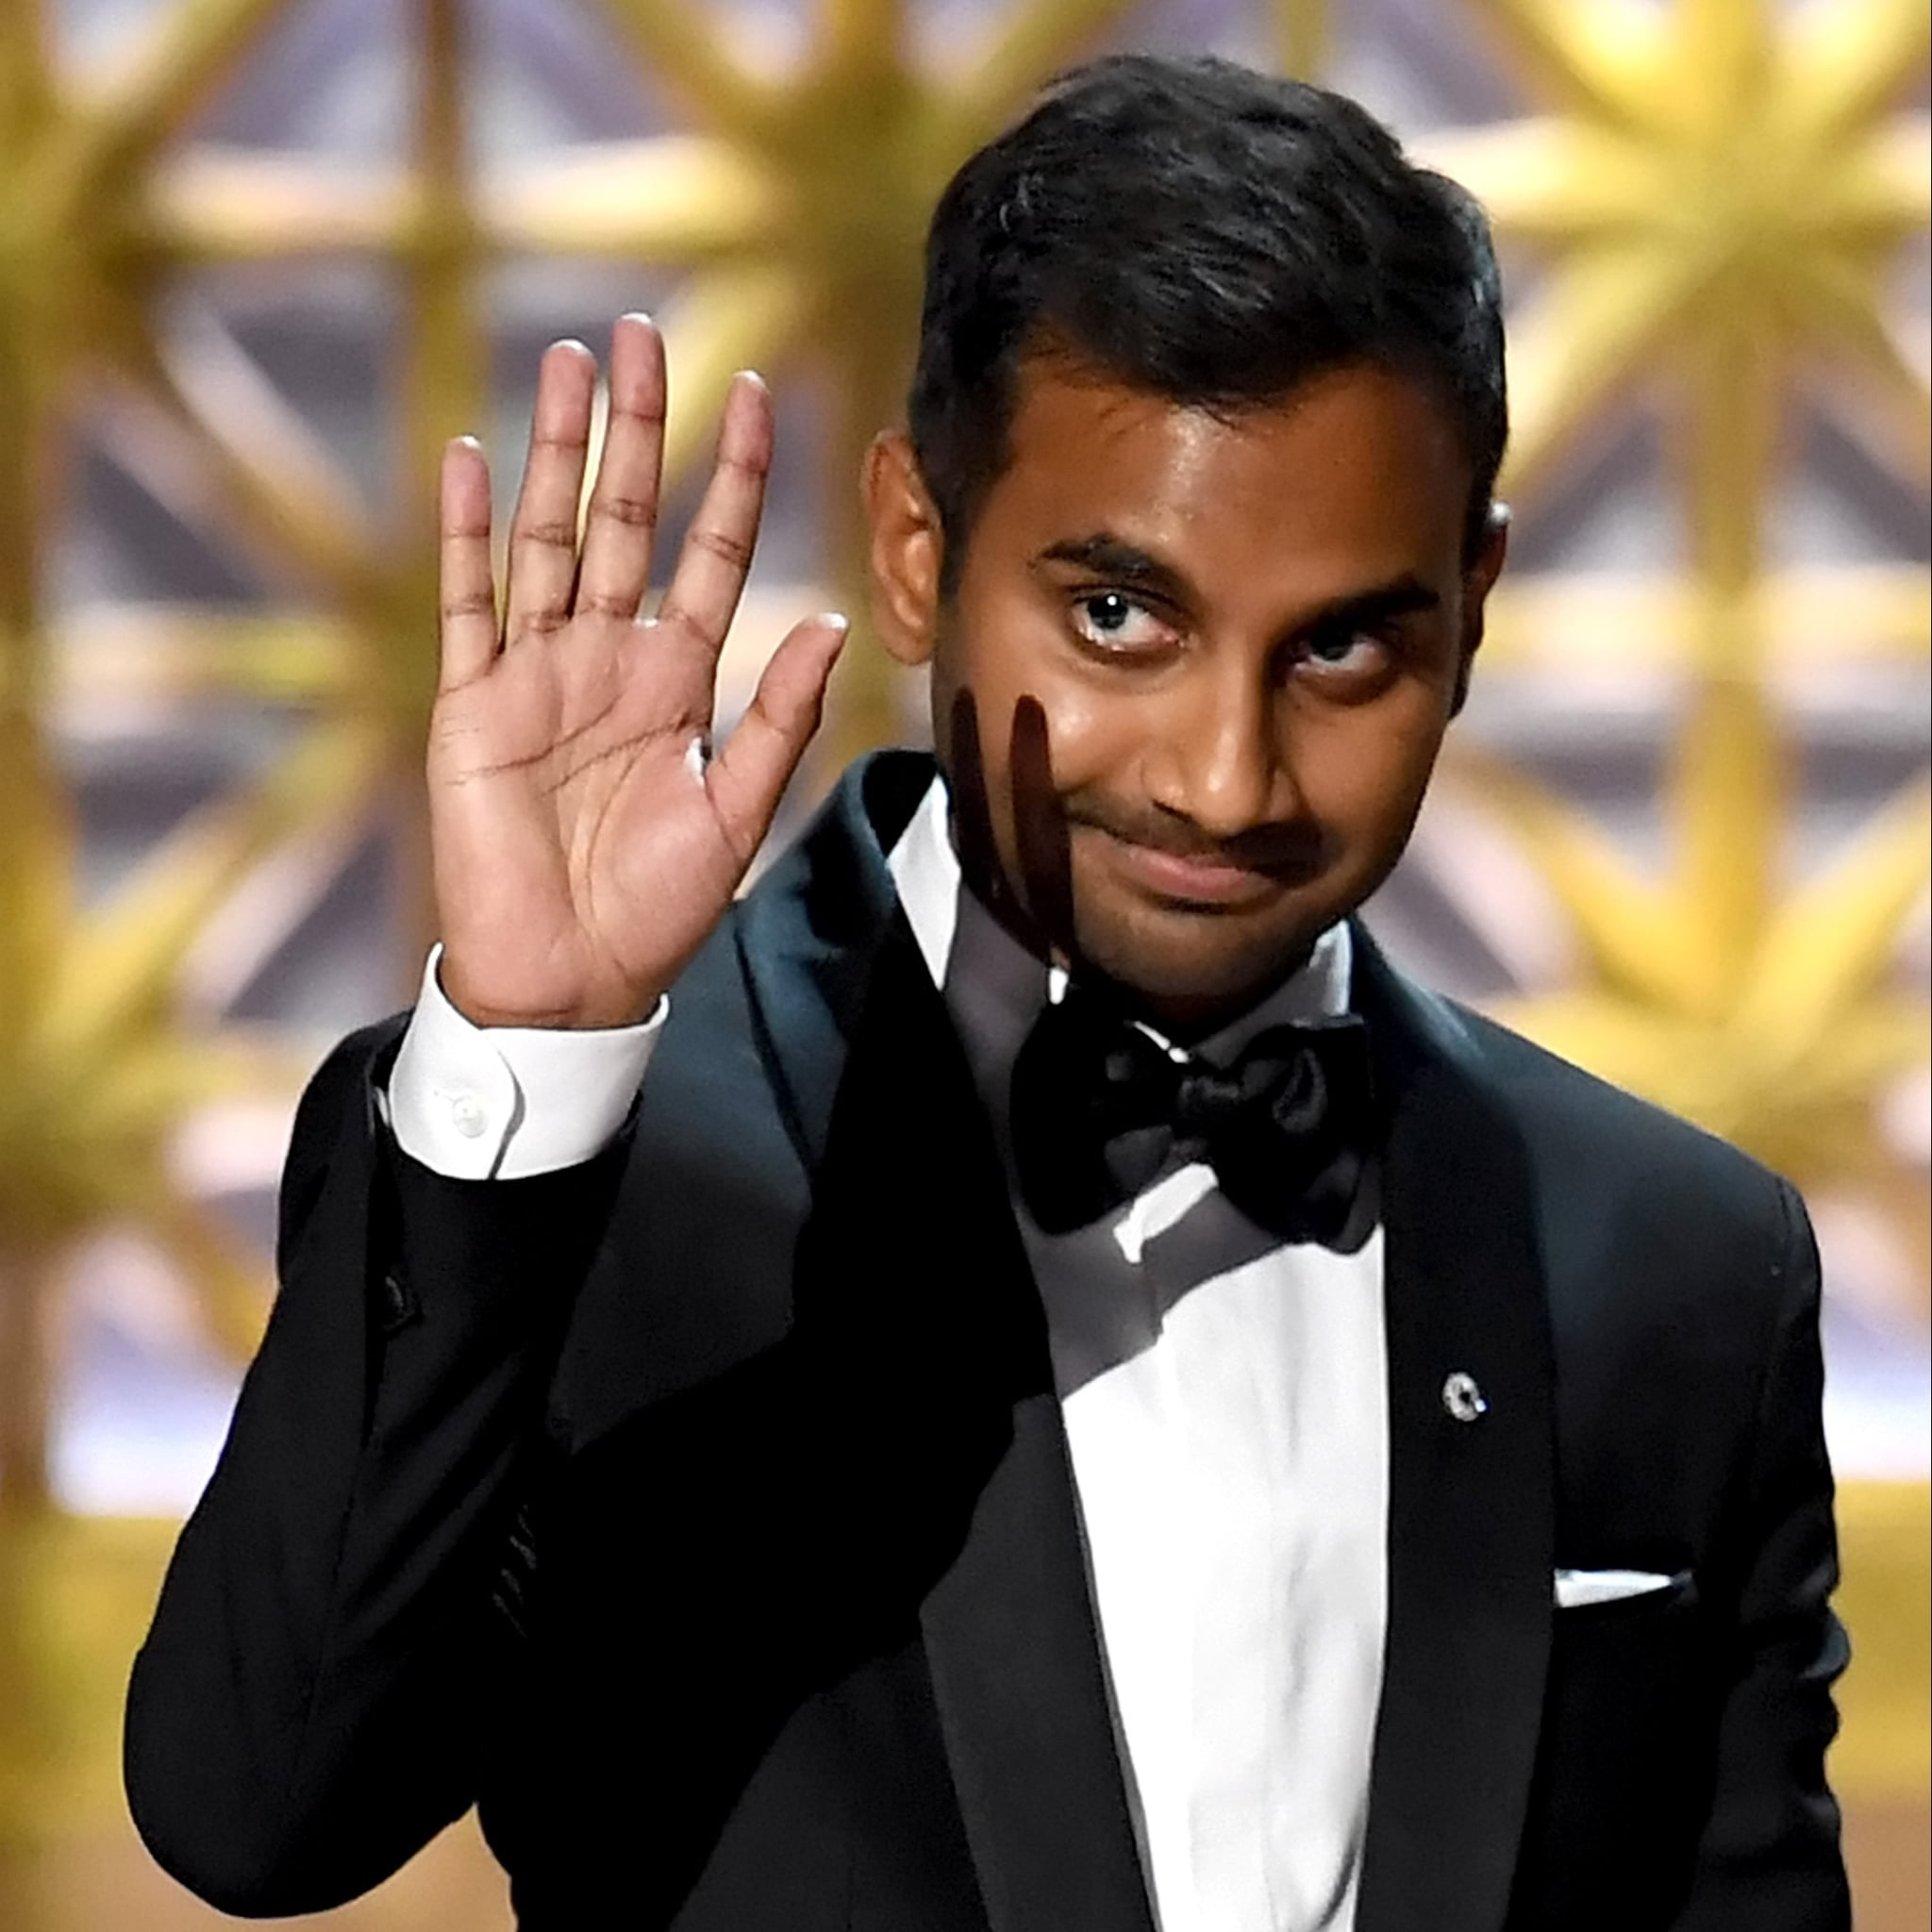 Personal essay on aziz ansari saying no and mixed signals when i first read about the accusations being made against aziz ansari my immediate thought was yup ive been on plenty of dates that felt similar stopboris Gallery